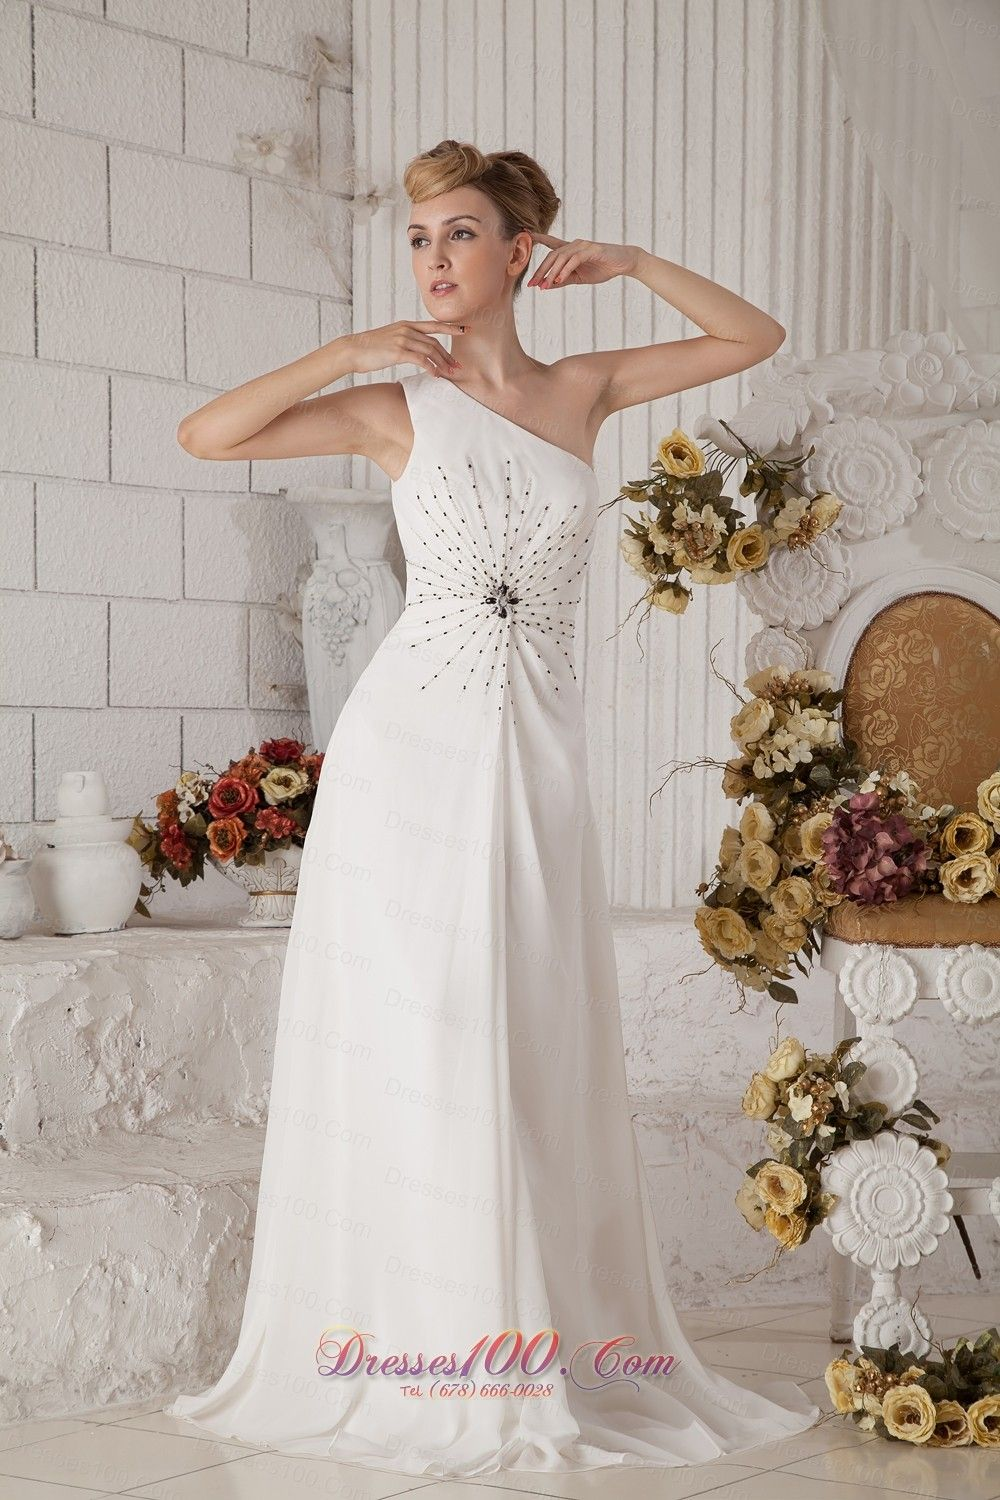 Uptown pageant dresses in new jersey uptown pageant dresses in new